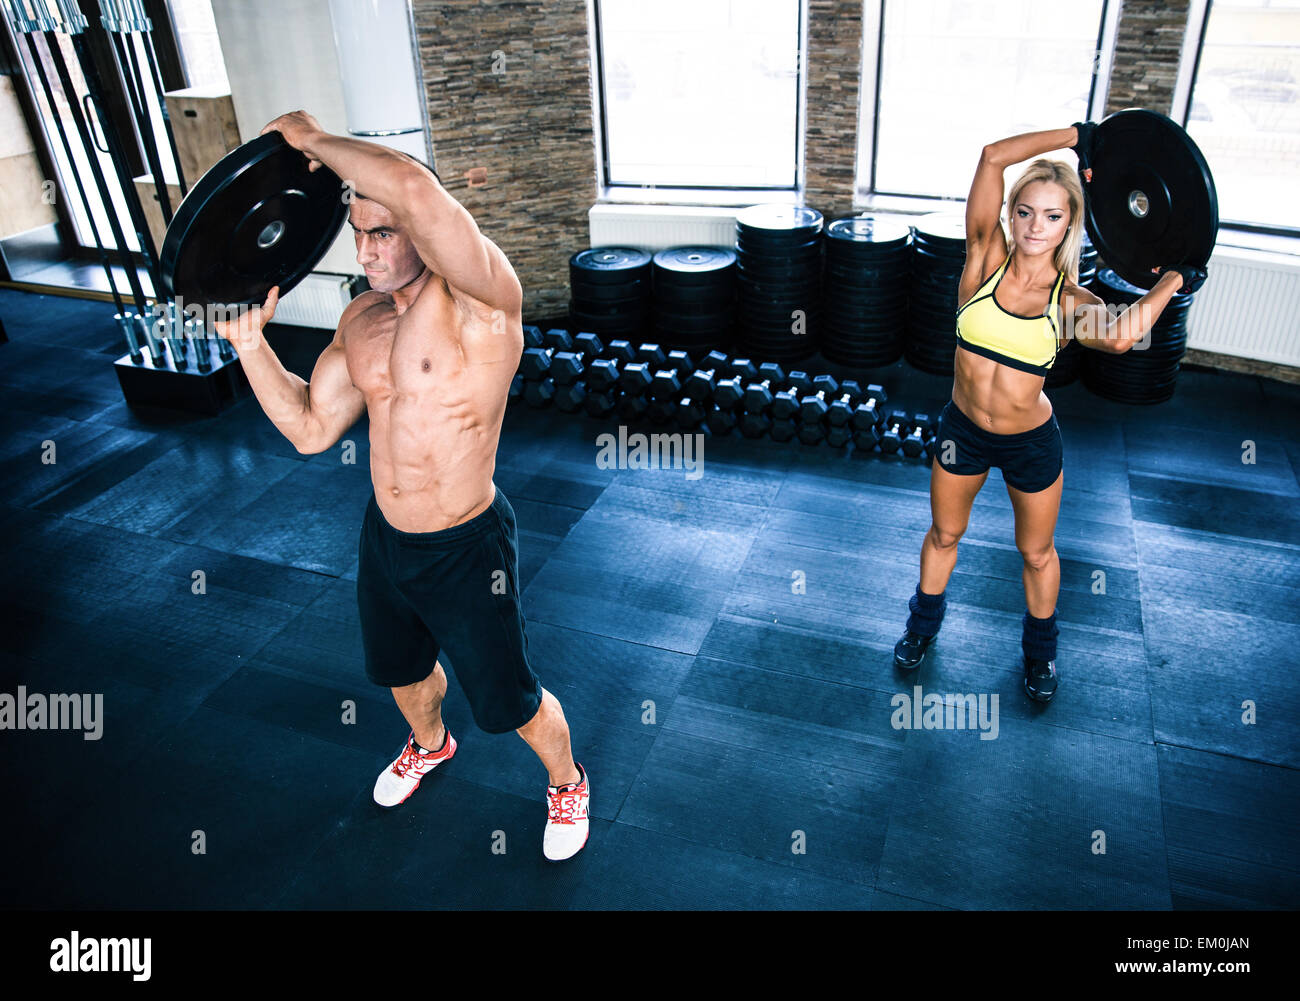 Muscular man and woman workout at crossfit gym - Stock Image